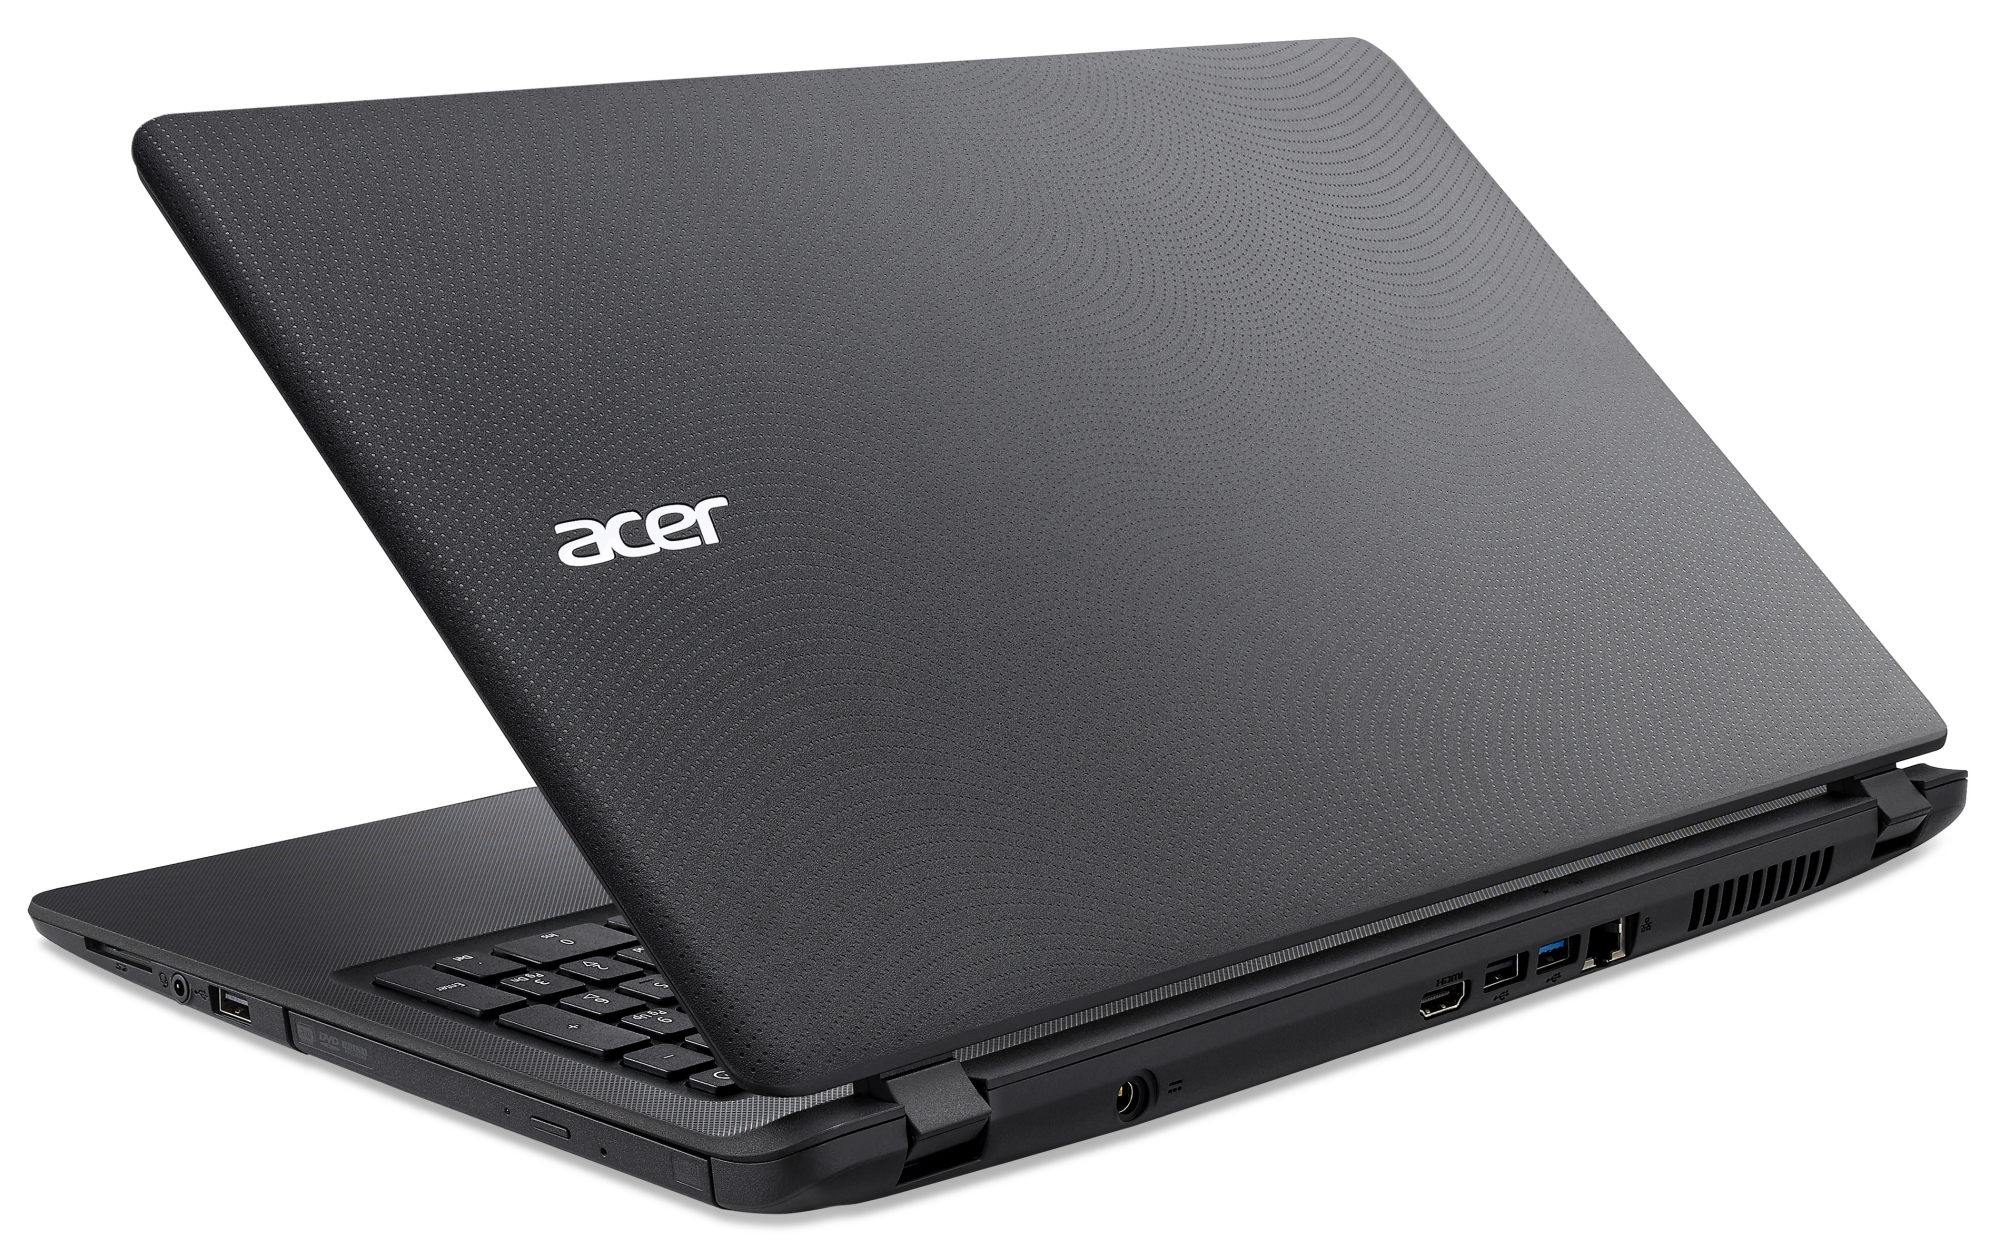 Acer Extensa 5635 Notebook Realtek Bluetooth New